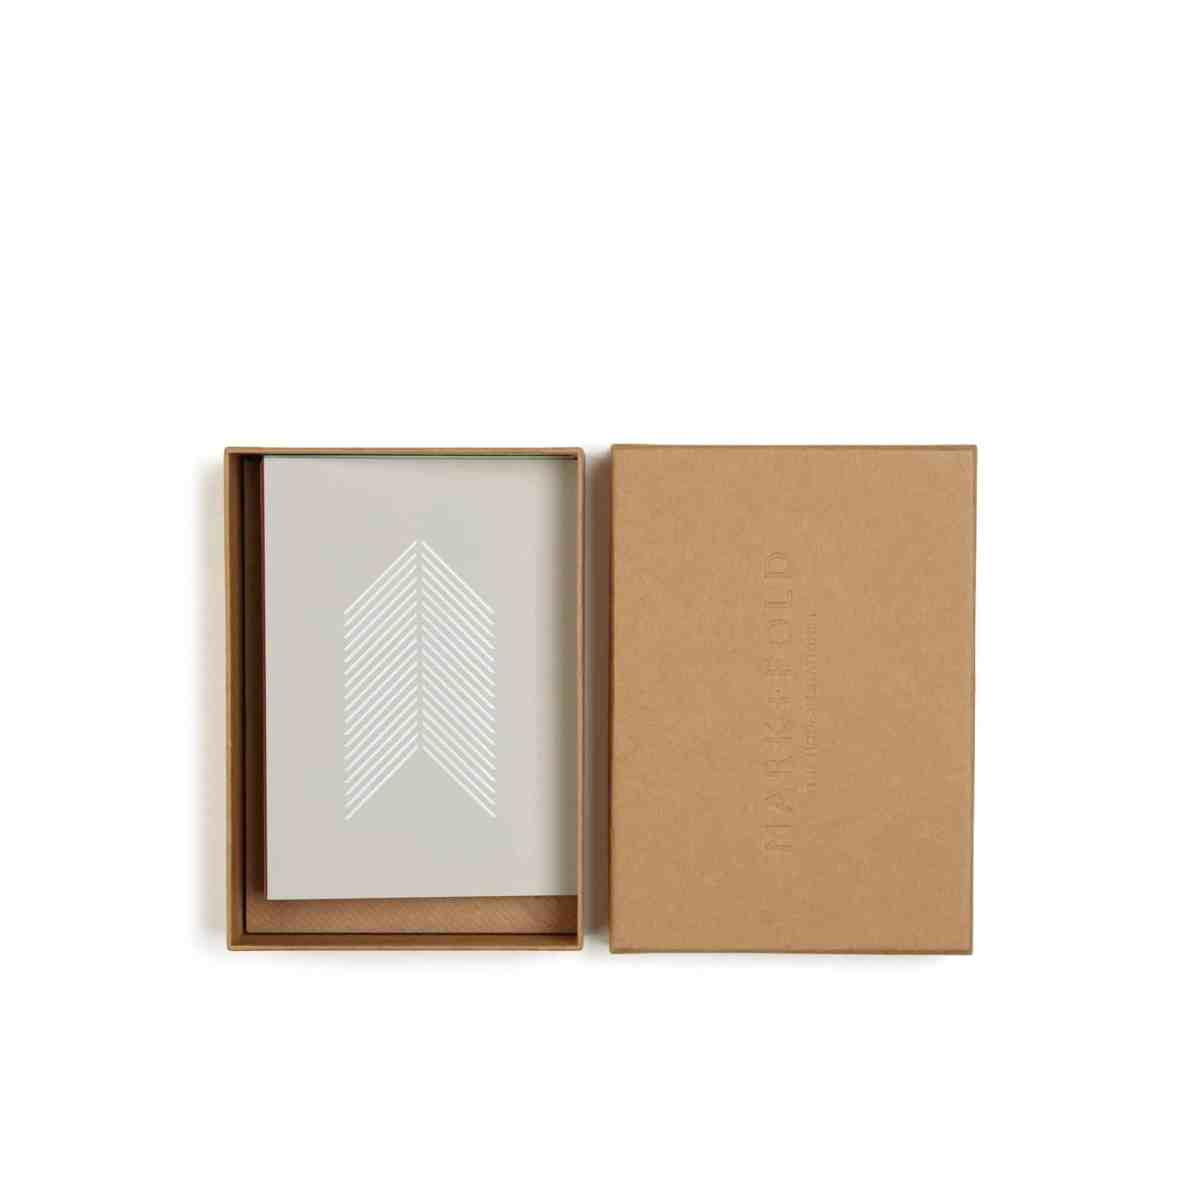 mark-fold-box-of-cards-8-another-country-001